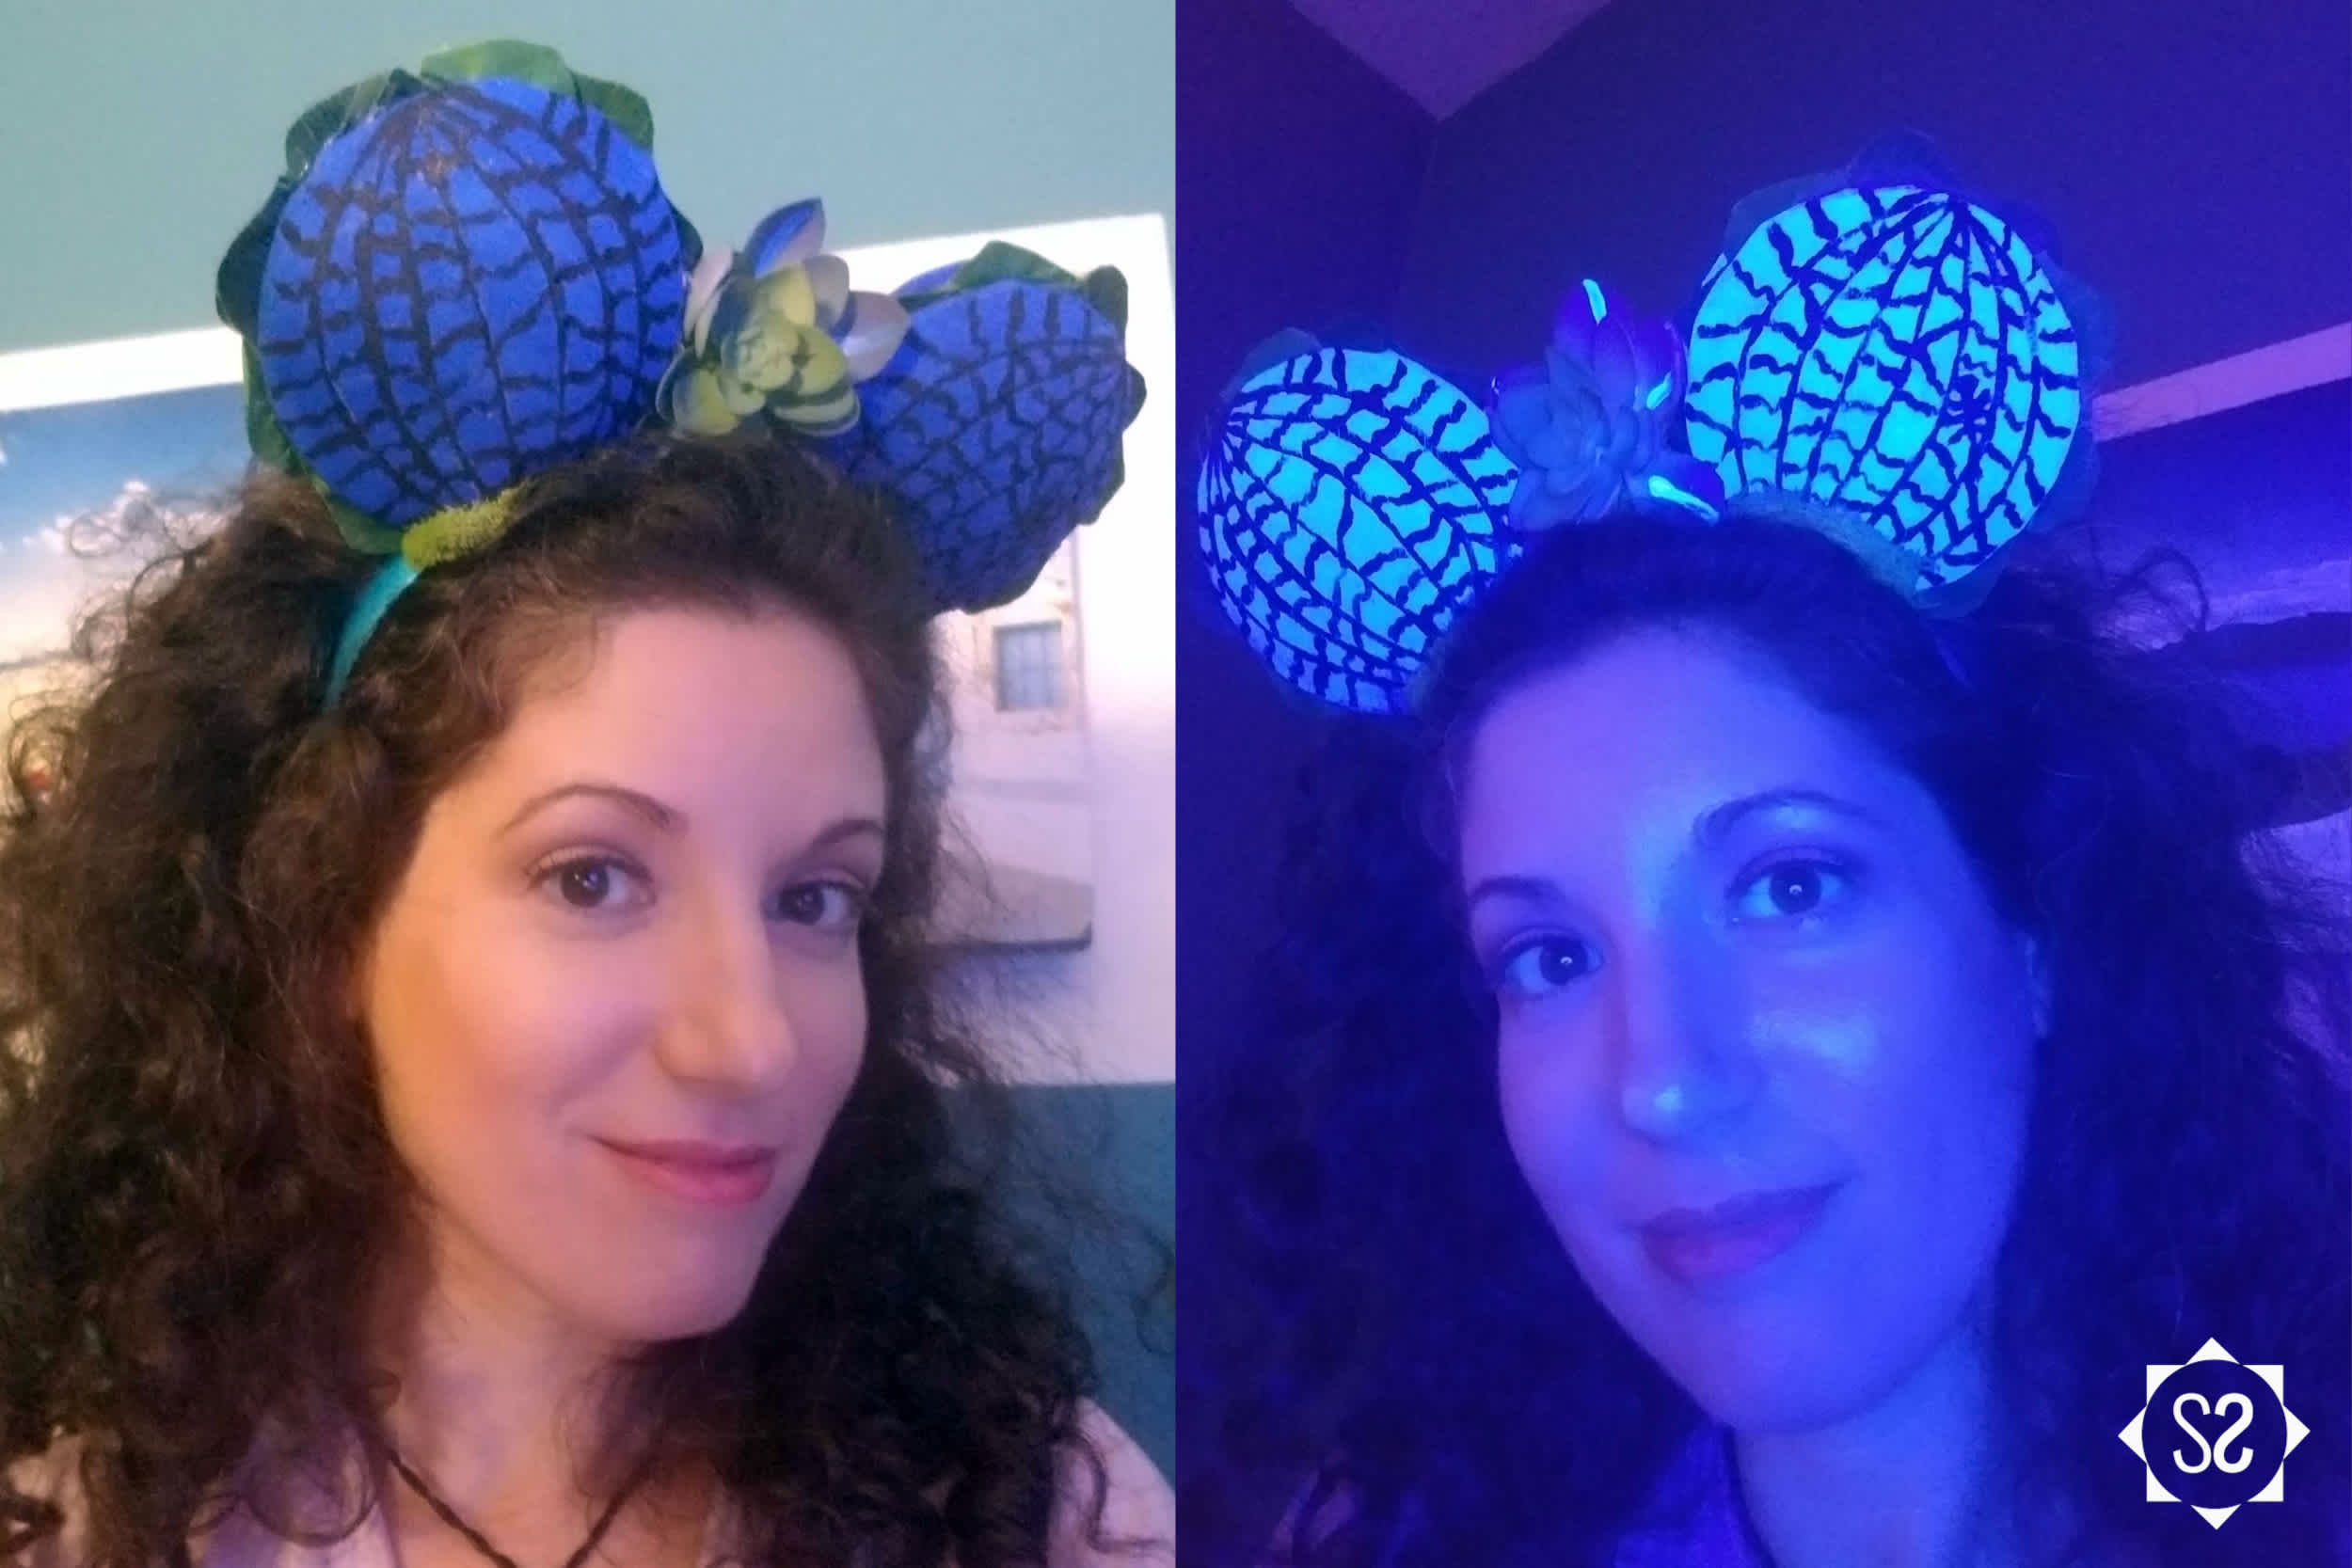 Pandora lily pad Minnie ears in normal light and black light